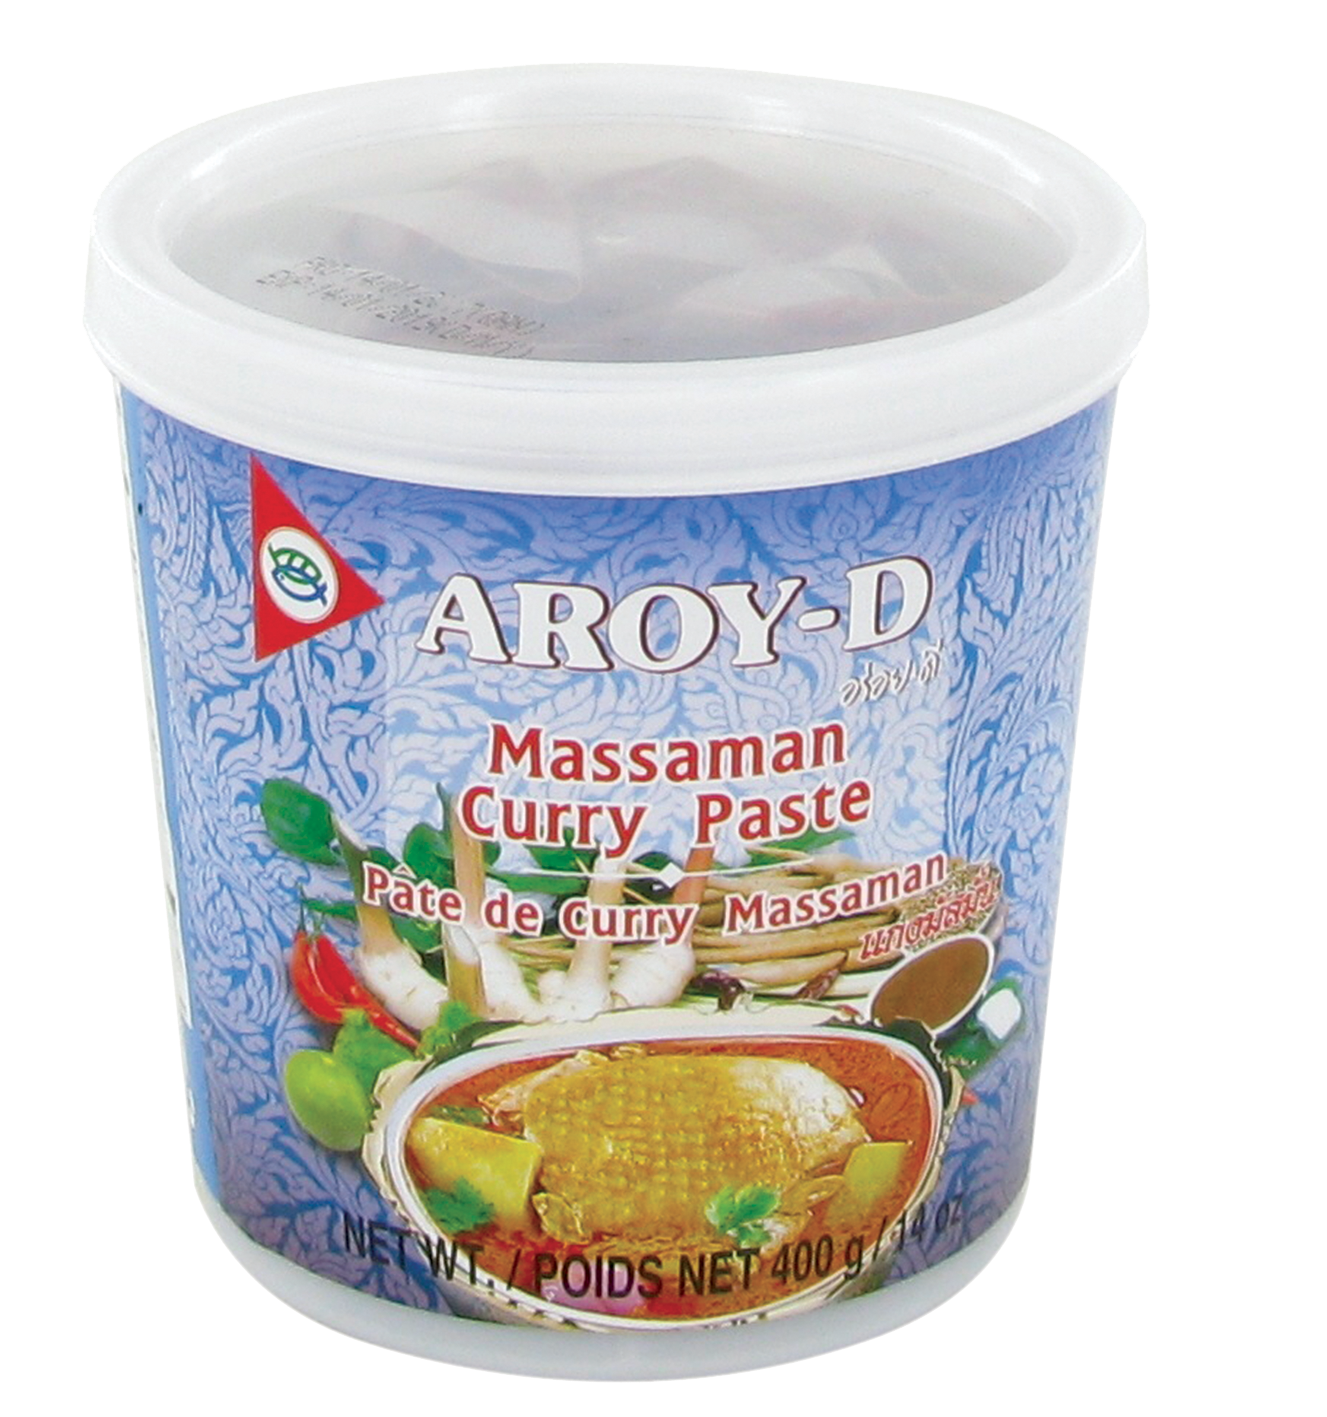 Pâte de curry massaman, Aroy-d (400 g)